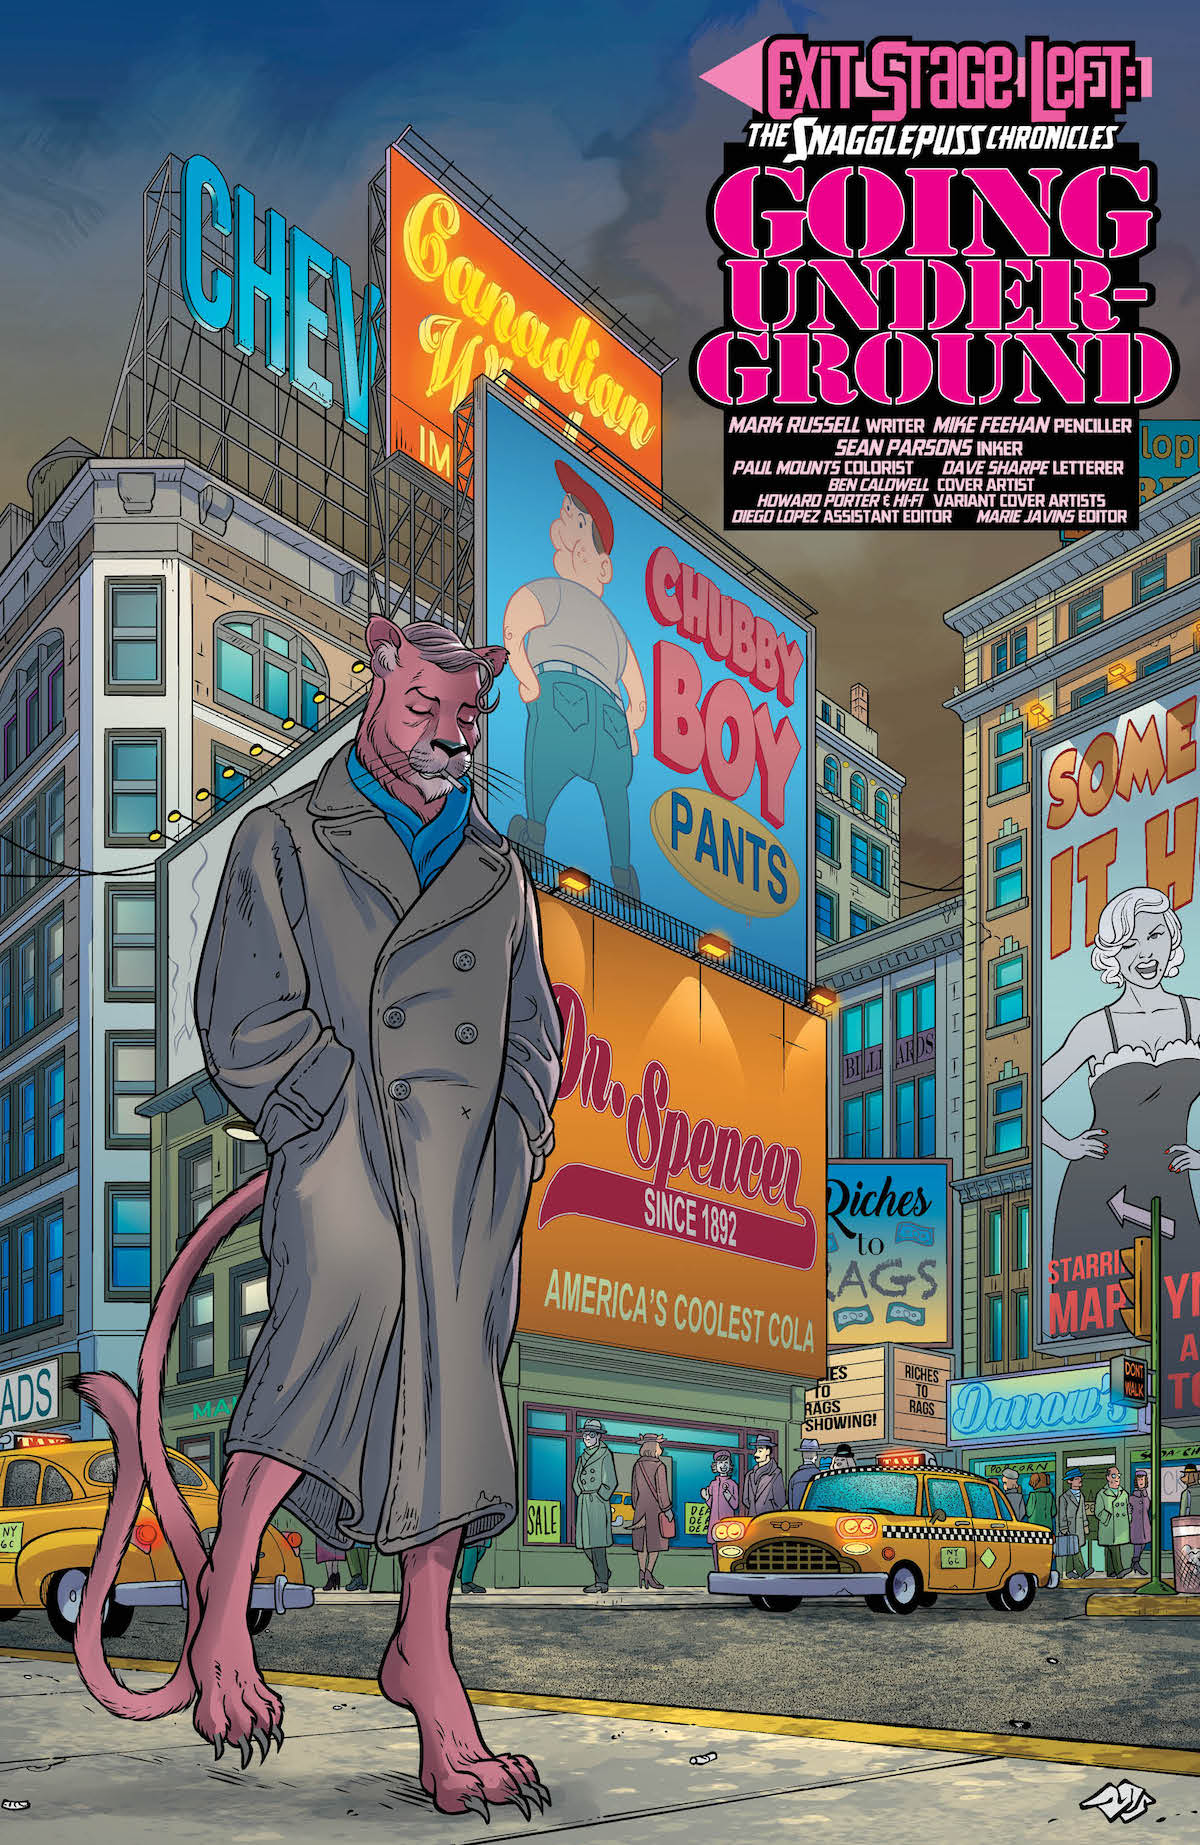 Snagglepuss Chronicles #6 page 5